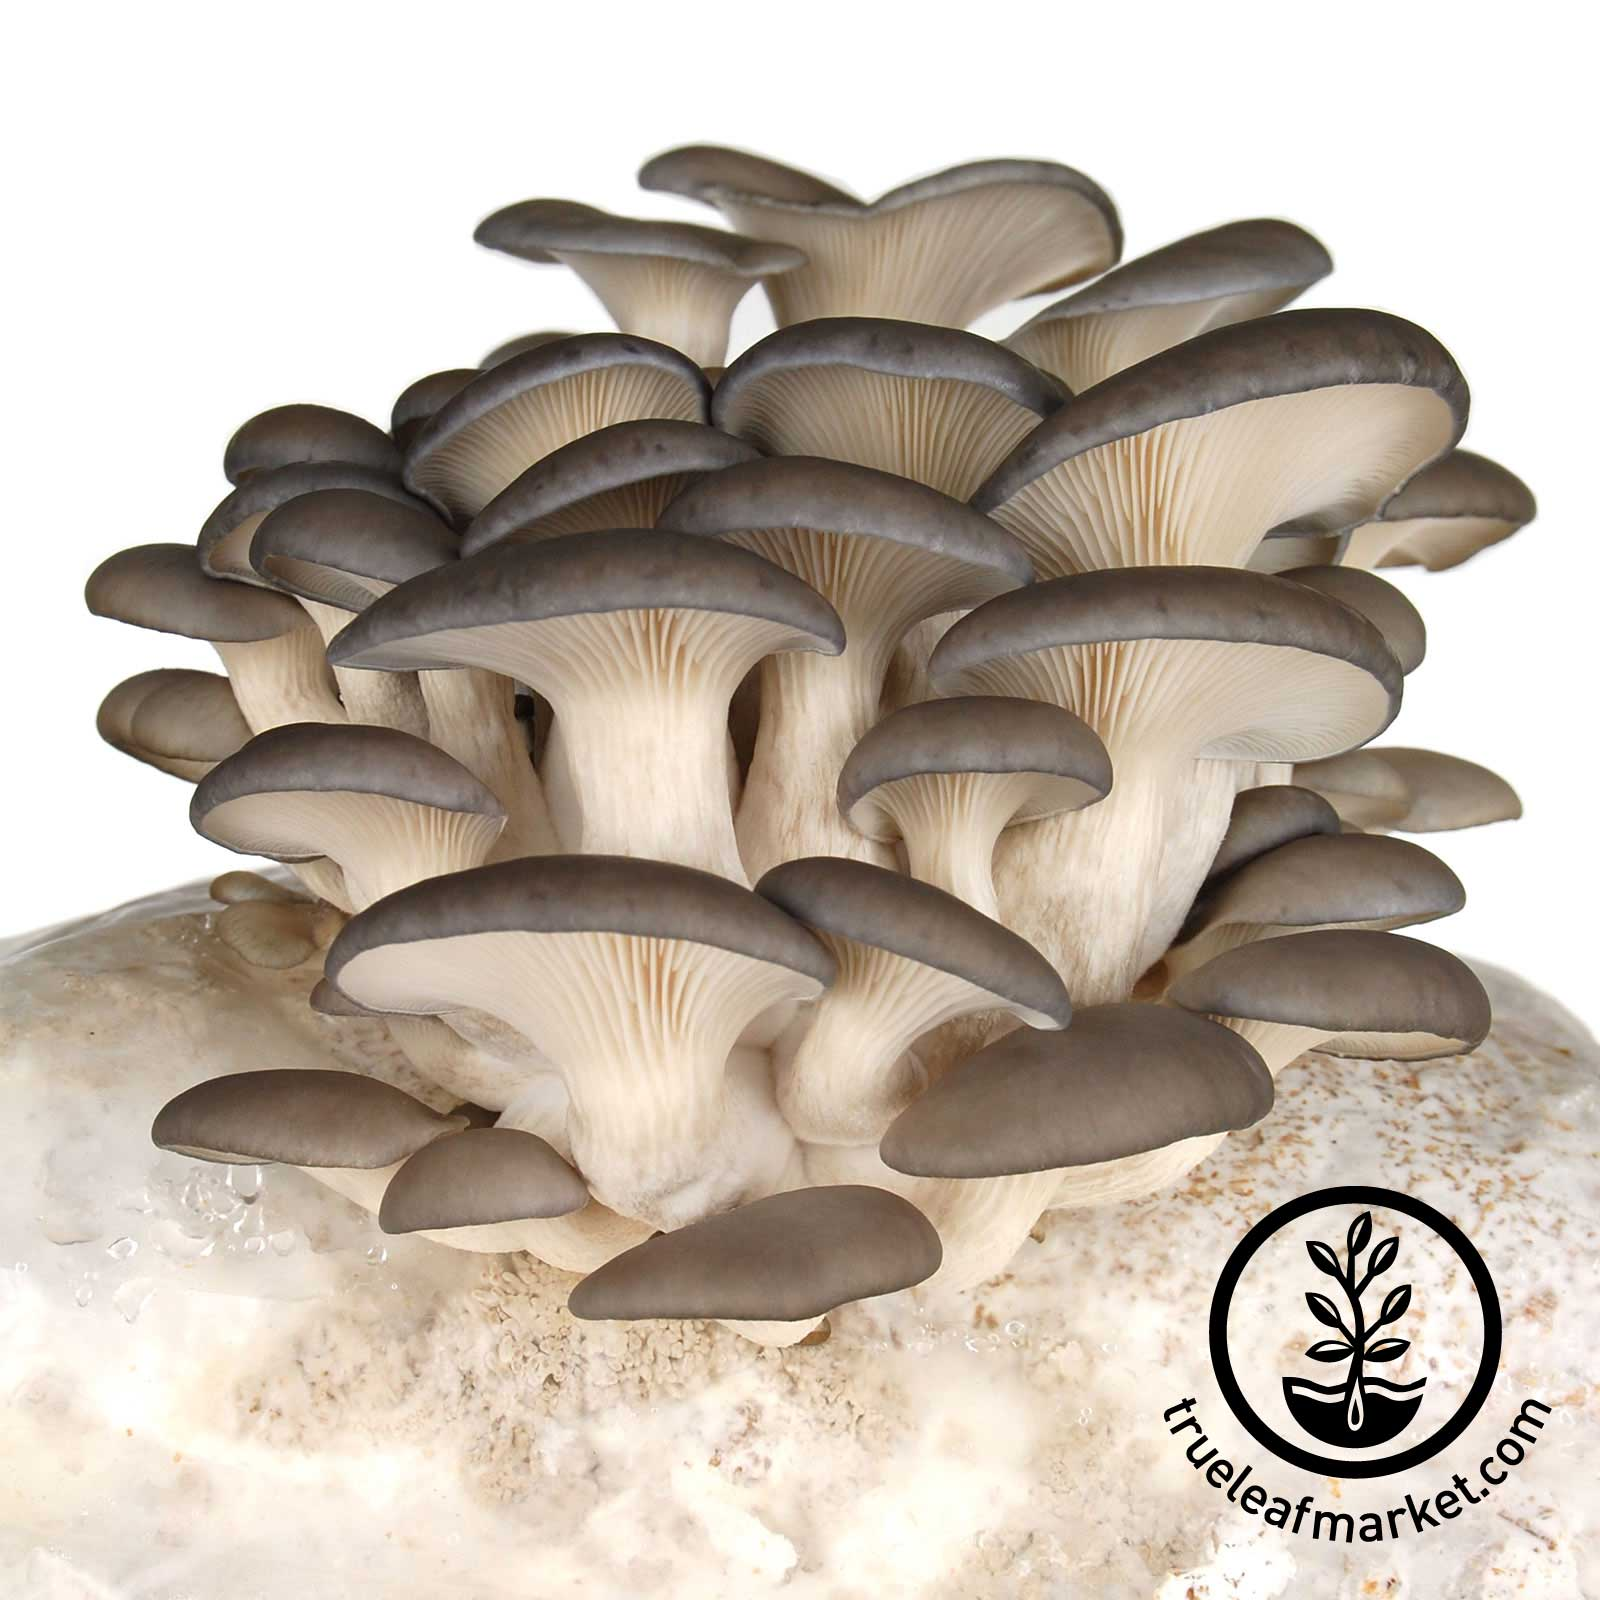 The Mojo Pro-Gro Grey Oyster Mushroom Grow Kit mojo, pro, gro, oyster, mushrooms, organic, growing, kits